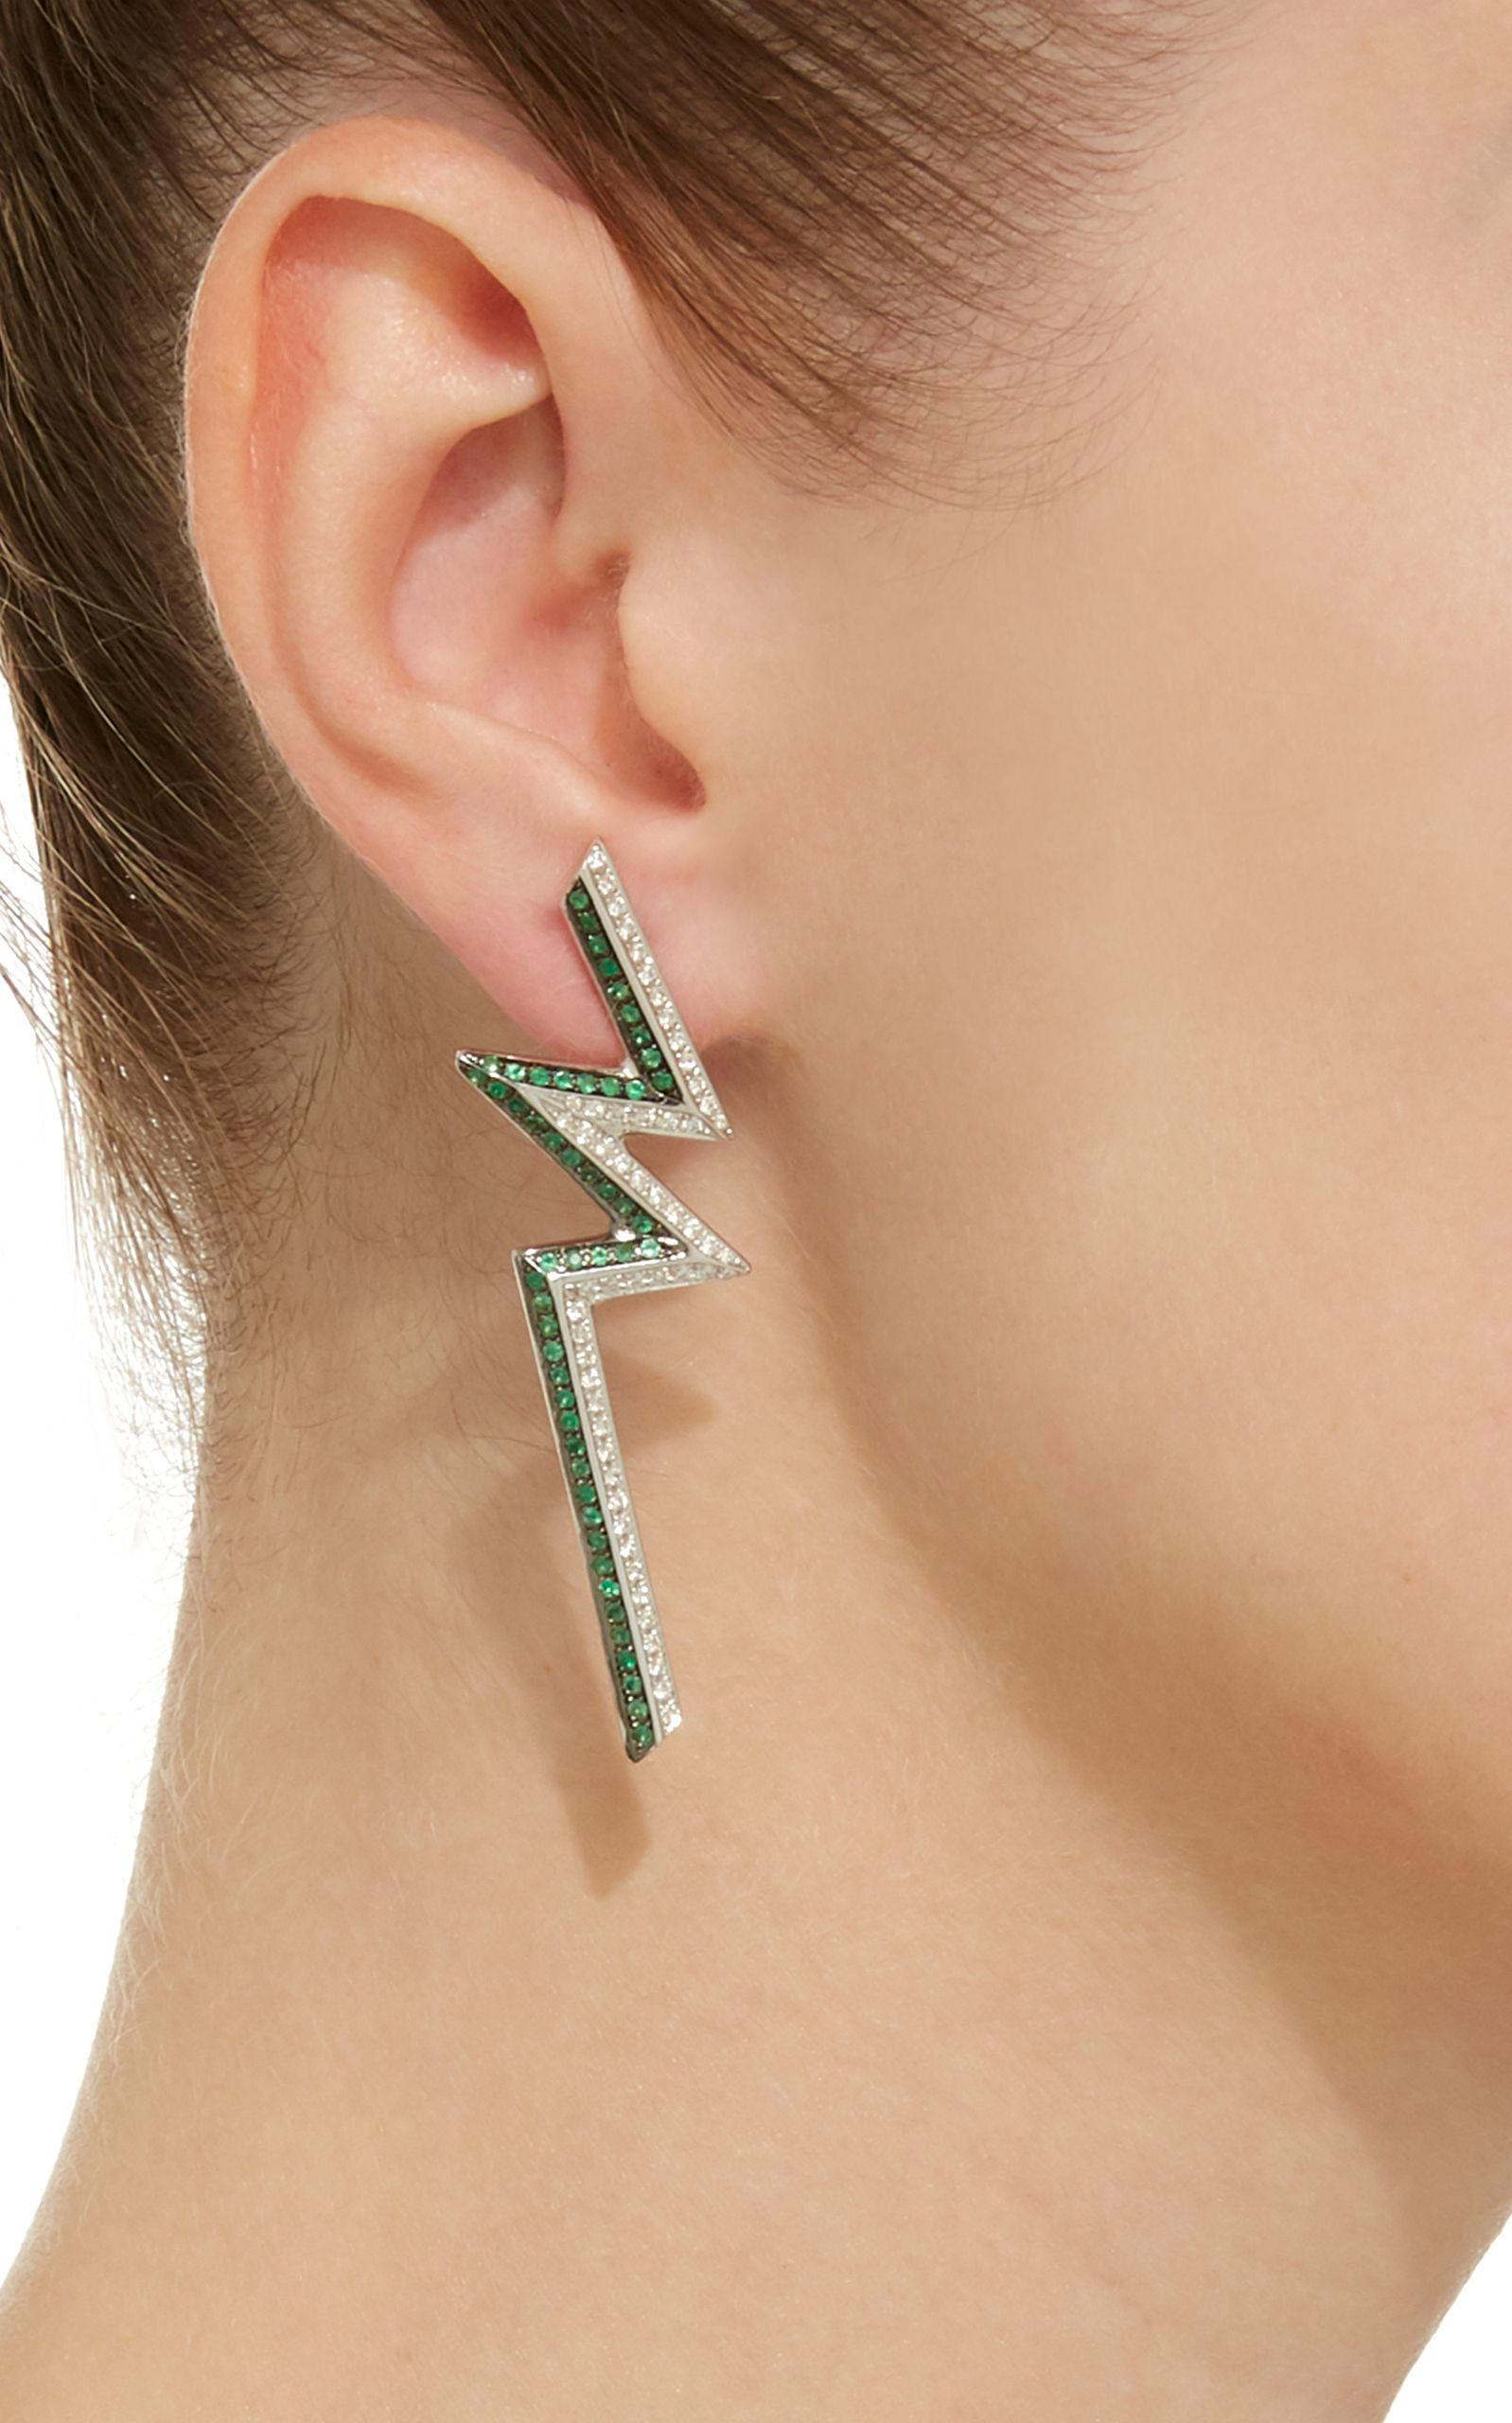 af6f56c43 Click product to zoom Run The Jewels, Emerald Earrings, Contemporary  Jewellery, Dress Me